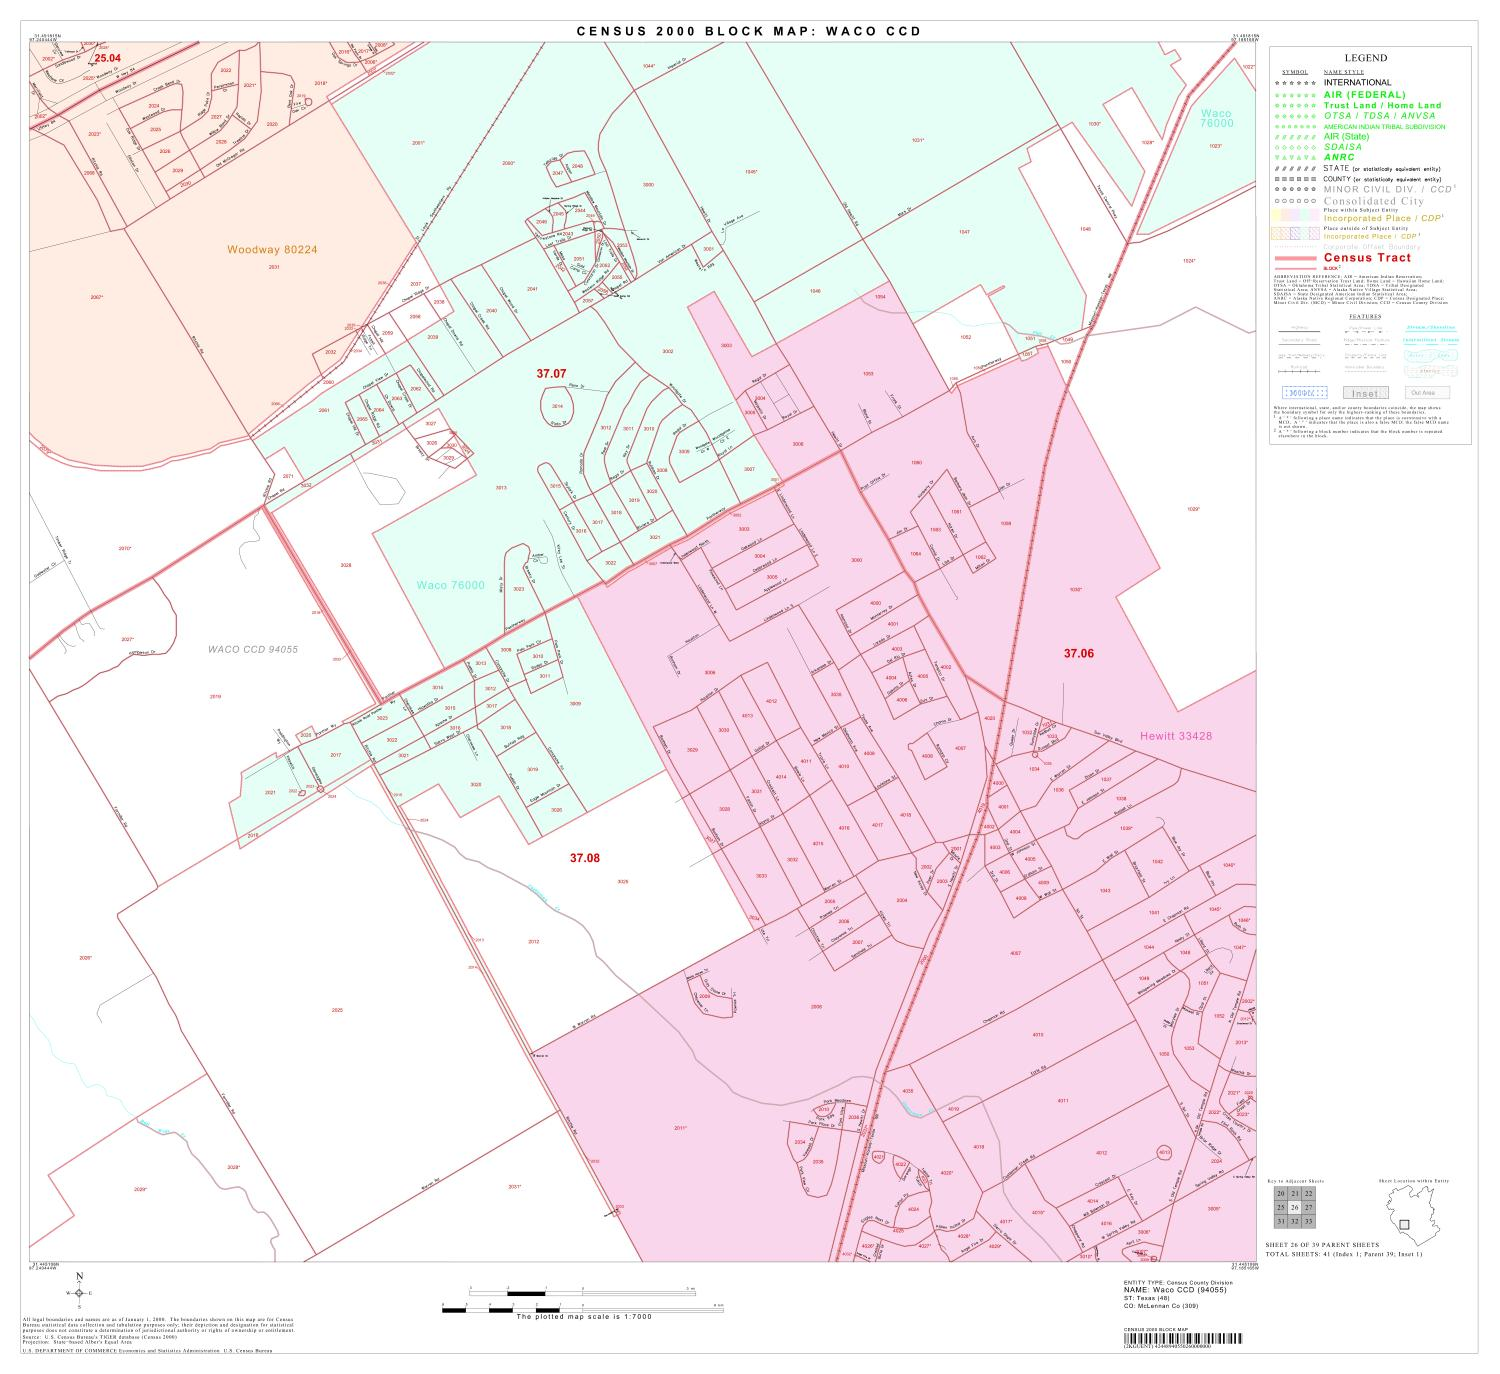 2000 Census County Subdivison Block Map: Waco CCD, Texas, Block 26                                                                                                      [Sequence #]: 1 of 1